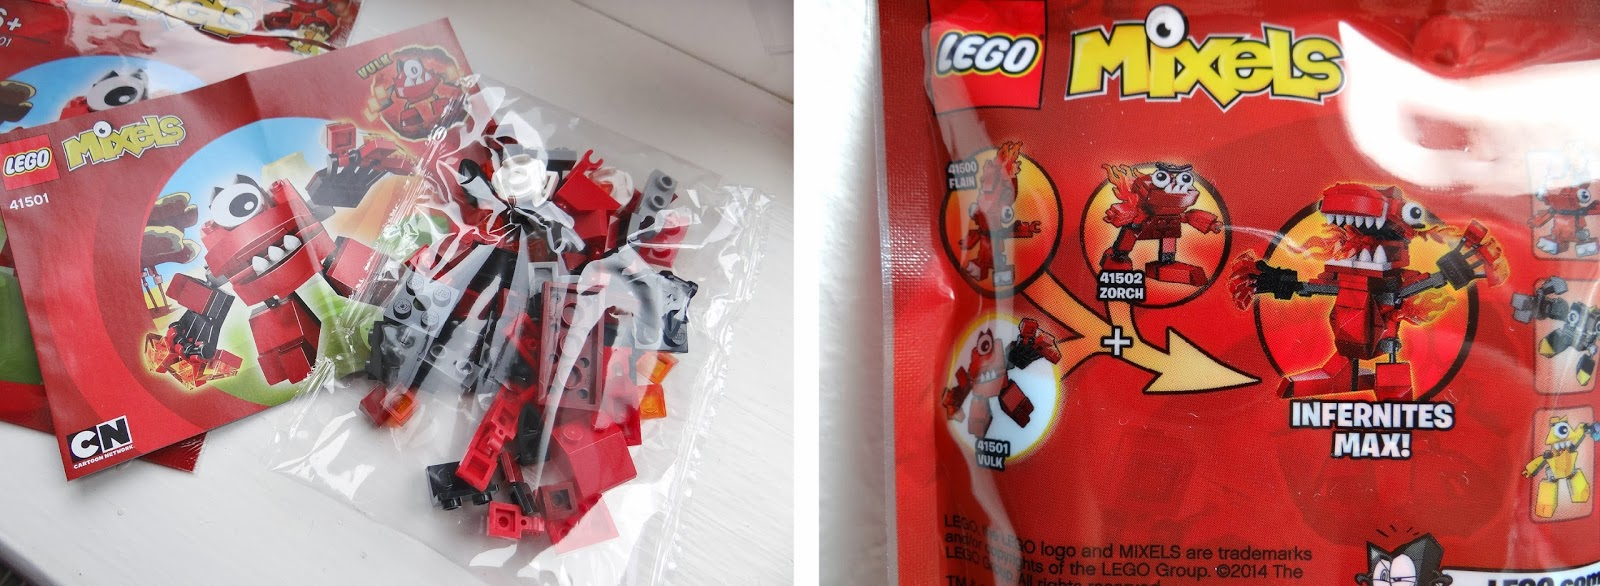 LEGO Mixels, Cartoon Network Mixels, affordable LEGO